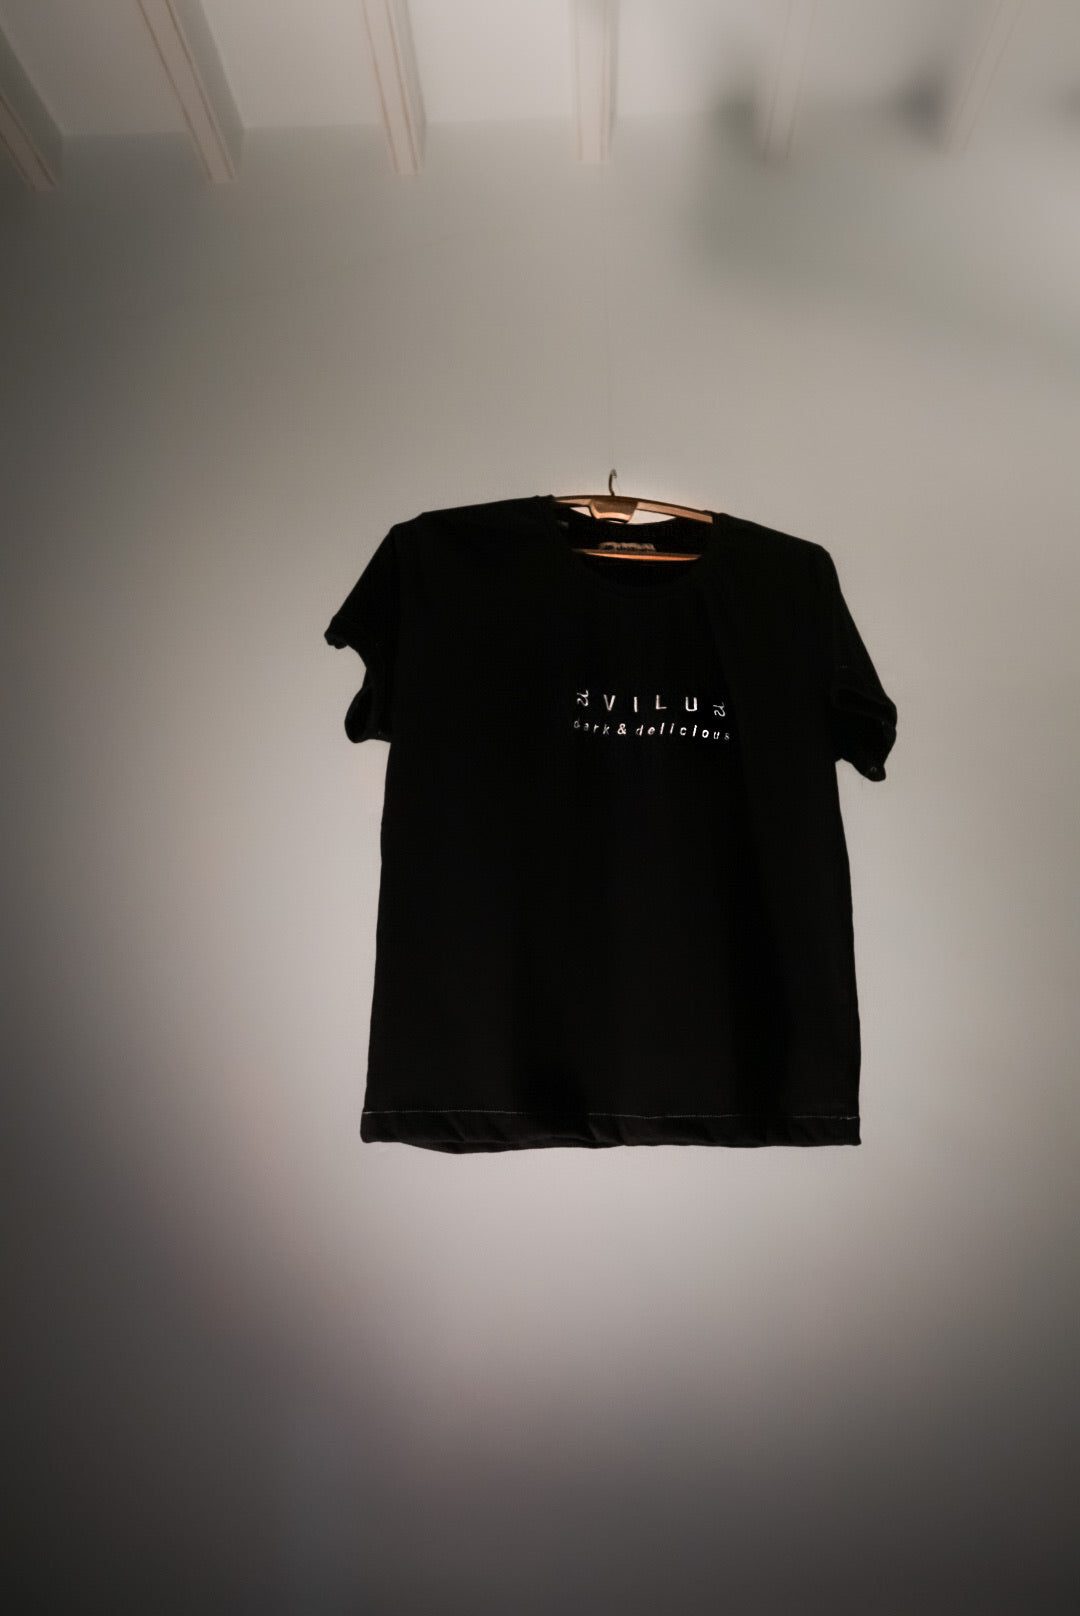 NAVILUNA Dark & Delicious Embroidered T-Shirt - 2nd Edition